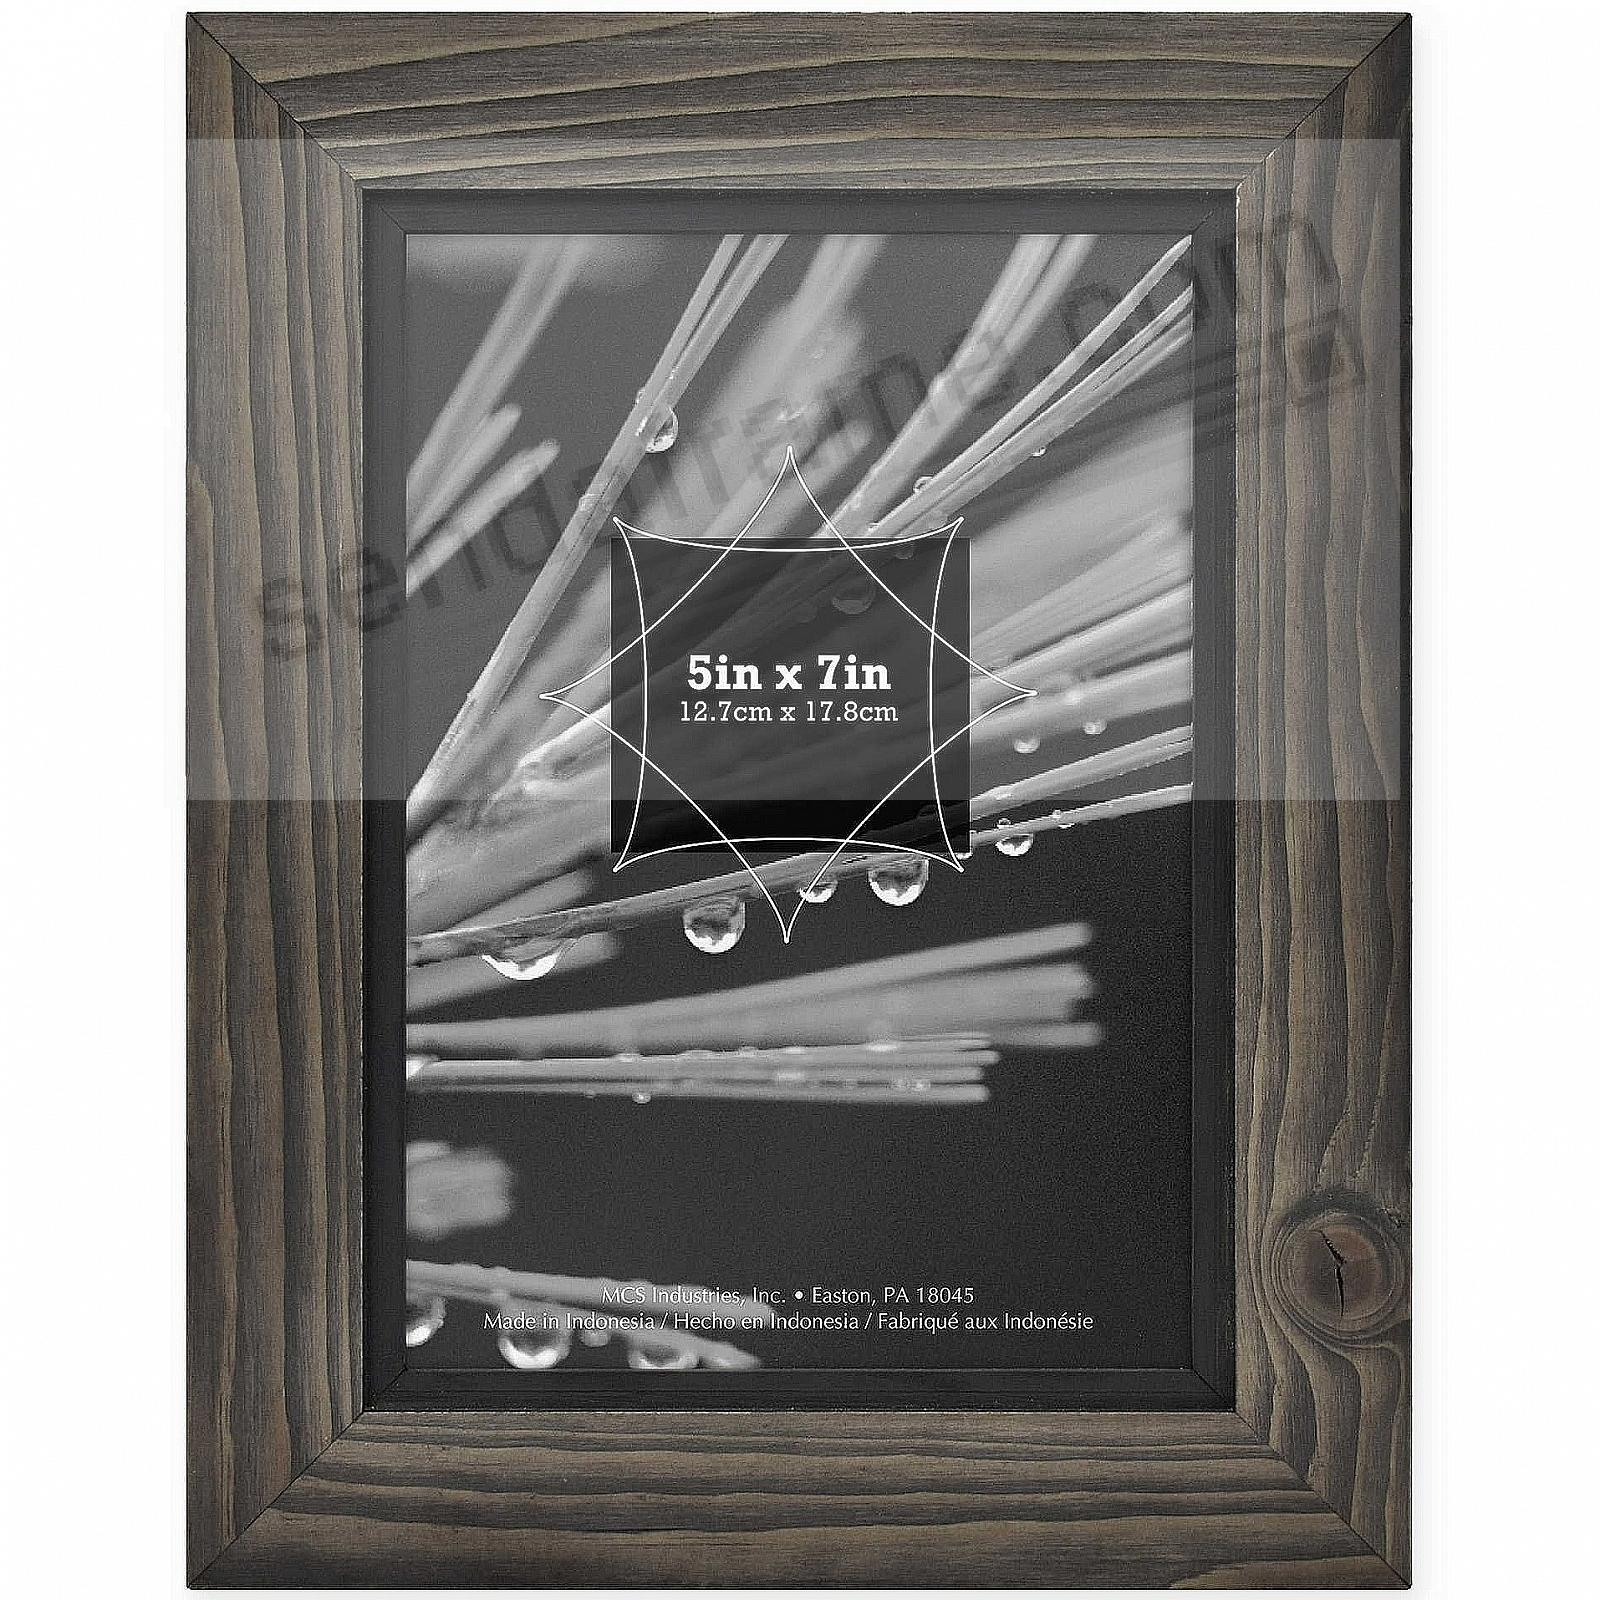 TIMBER Distressed Gray/Black Wood 5x7 Frame by MCS®